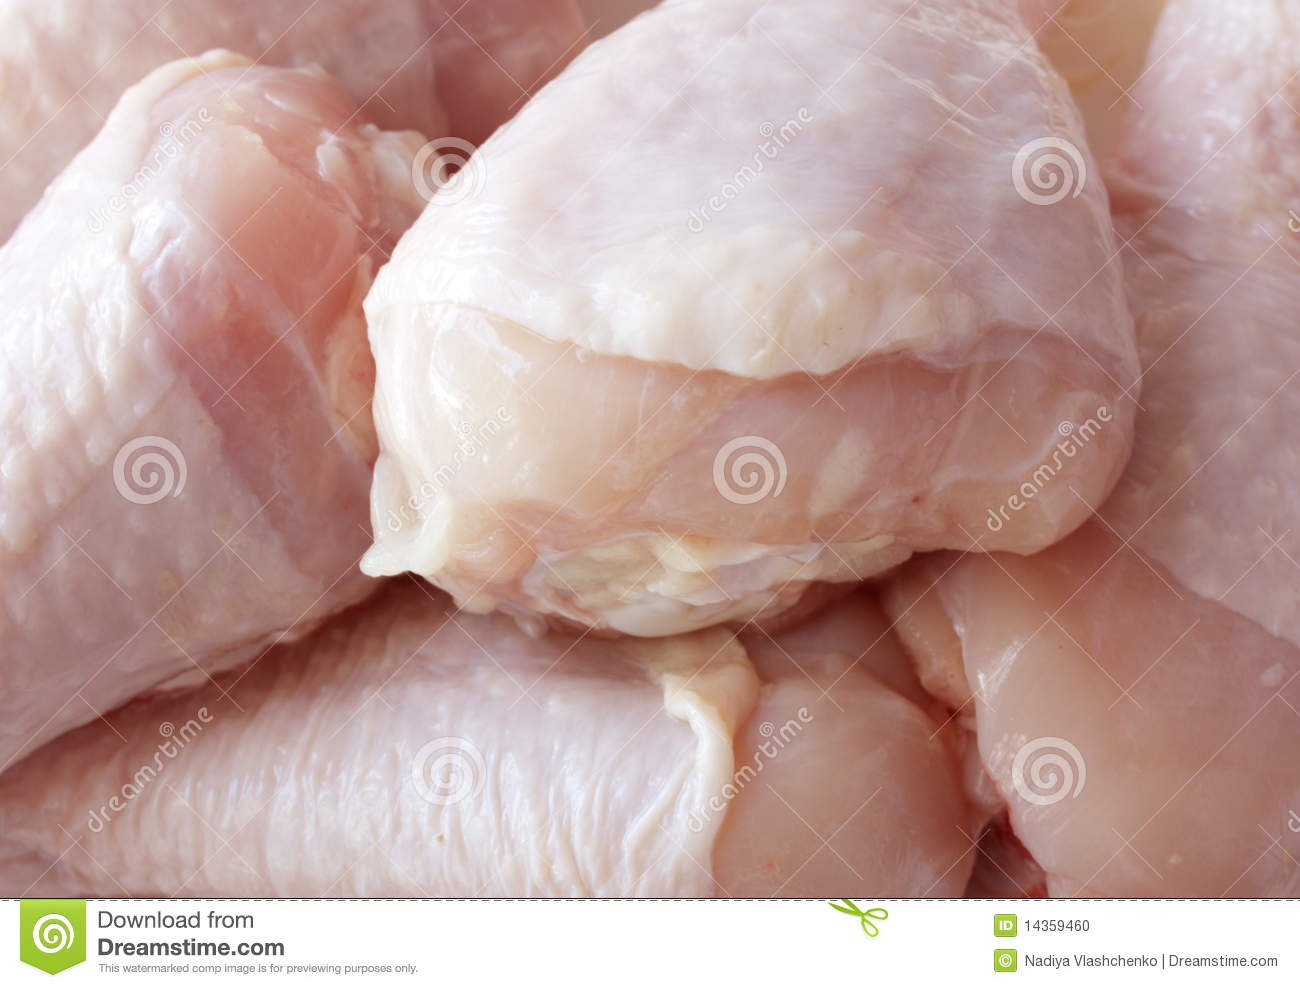 Raw Chicken Drumsticks Stock Photo - Image: 14359460